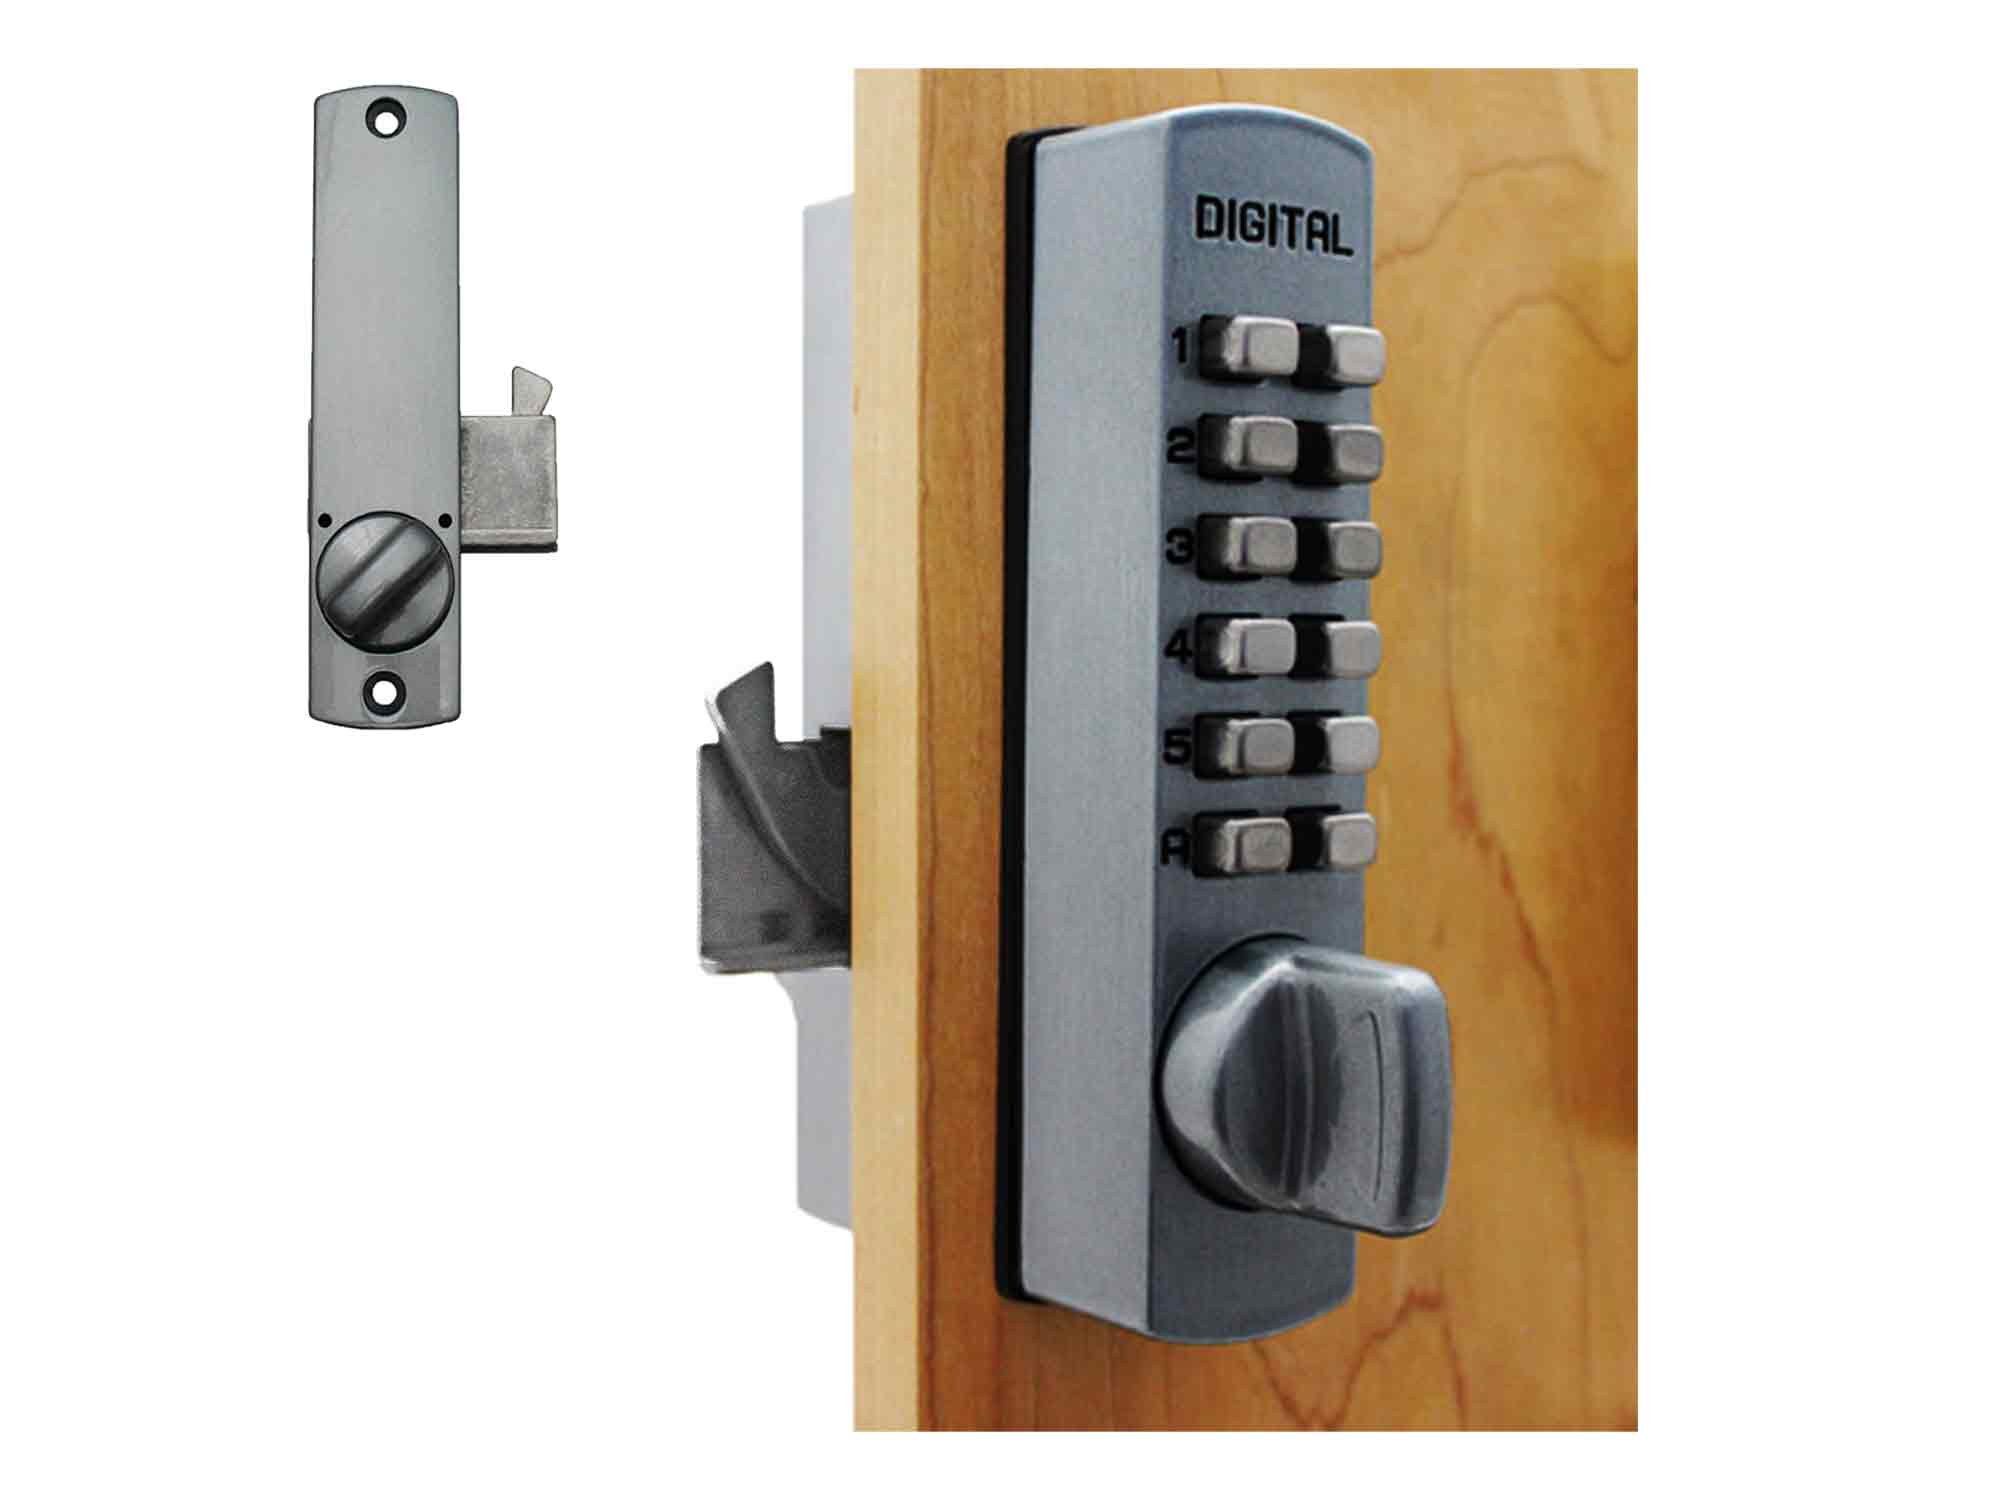 Lockey C150 Surface-Mount Cabinet Hookbolt Keypad Lock